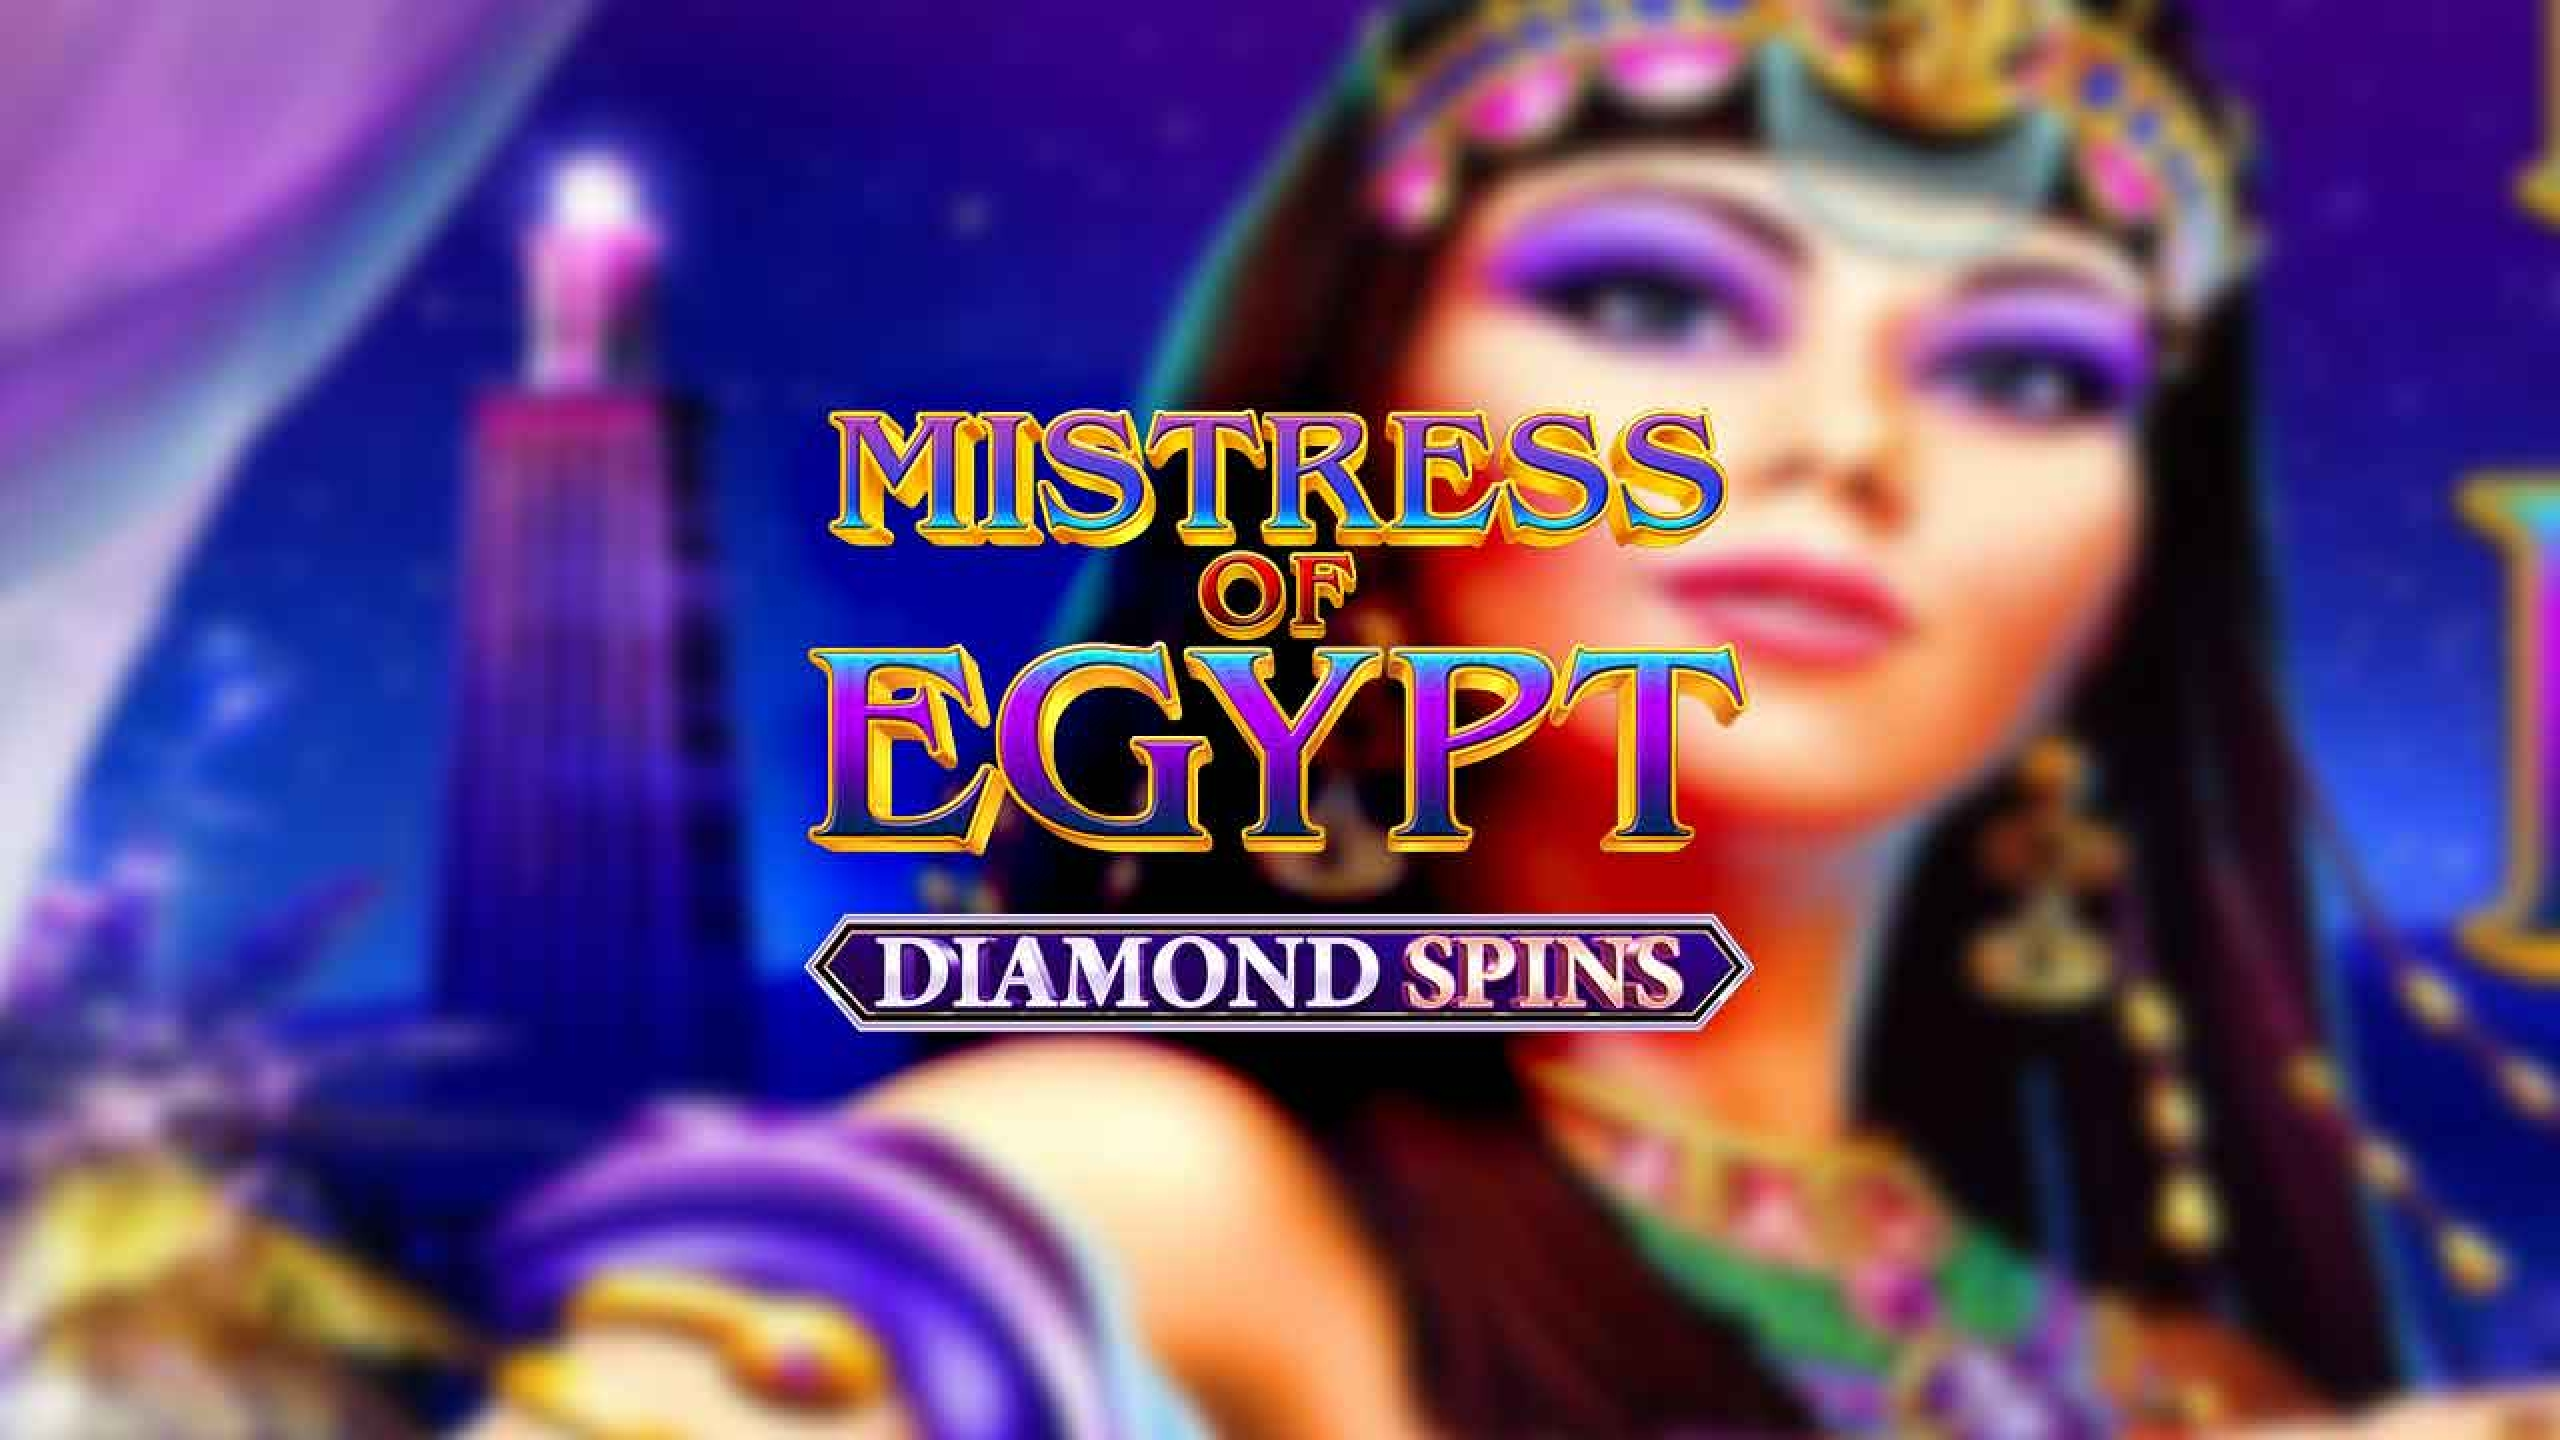 The Mistress of Egypt Diamond Spins Online Slot Demo Game by IGT